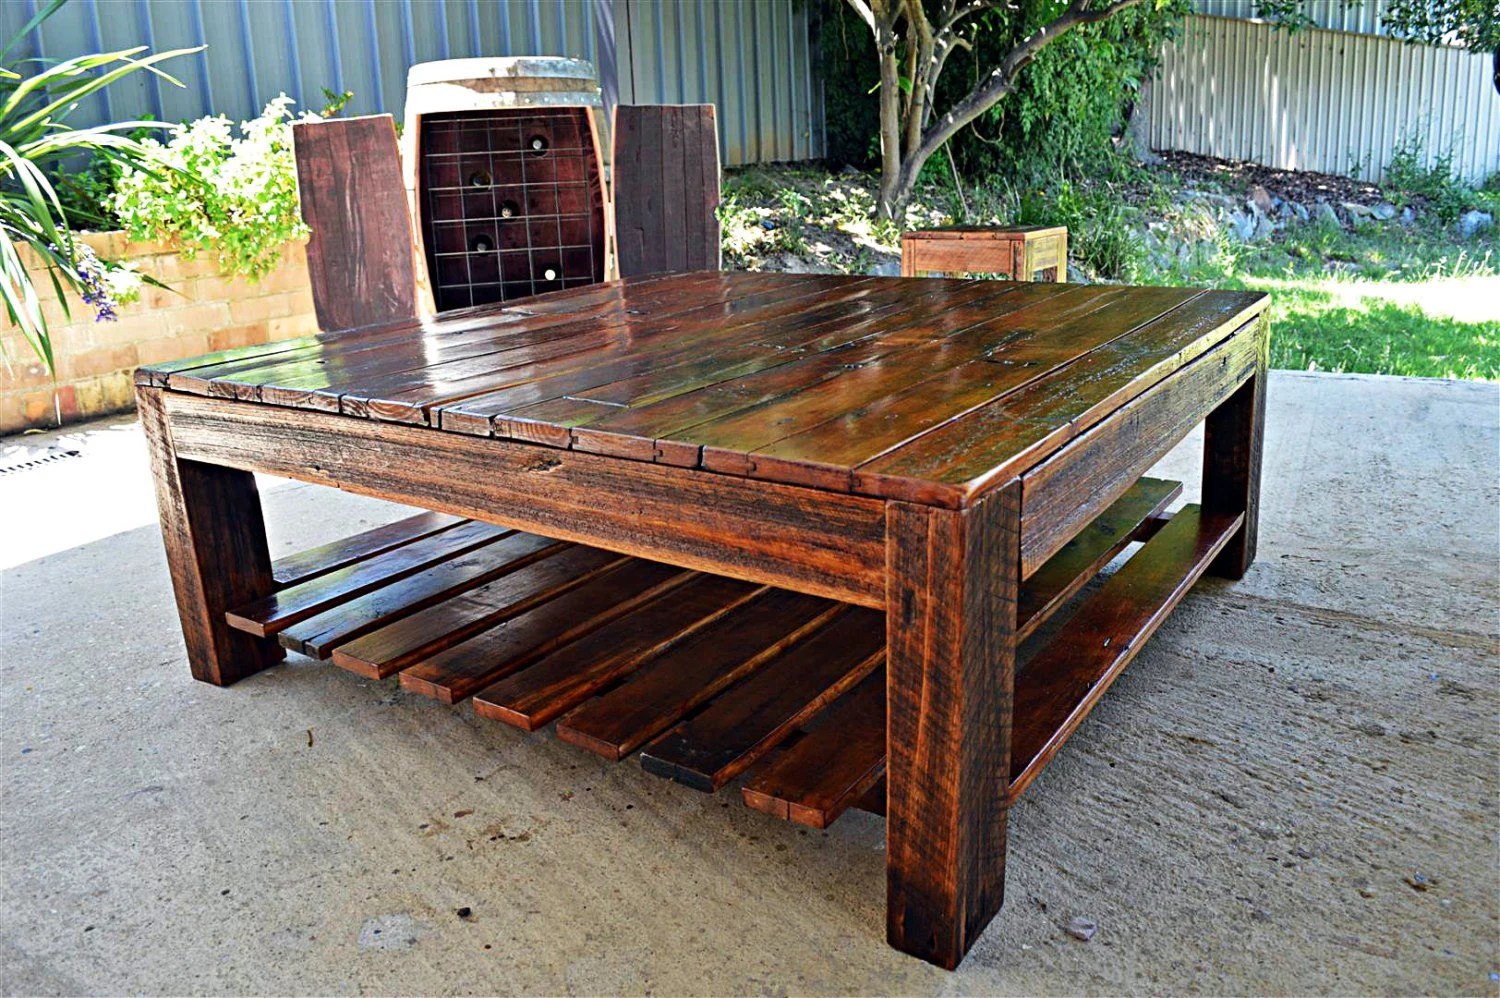 Solid Timber Coffee Table Square Recycled Timber Coffee Table Made In Australia Reclaimed Wood Rustic Barn Solid Country Cottage Large 1 2m X 1 2m